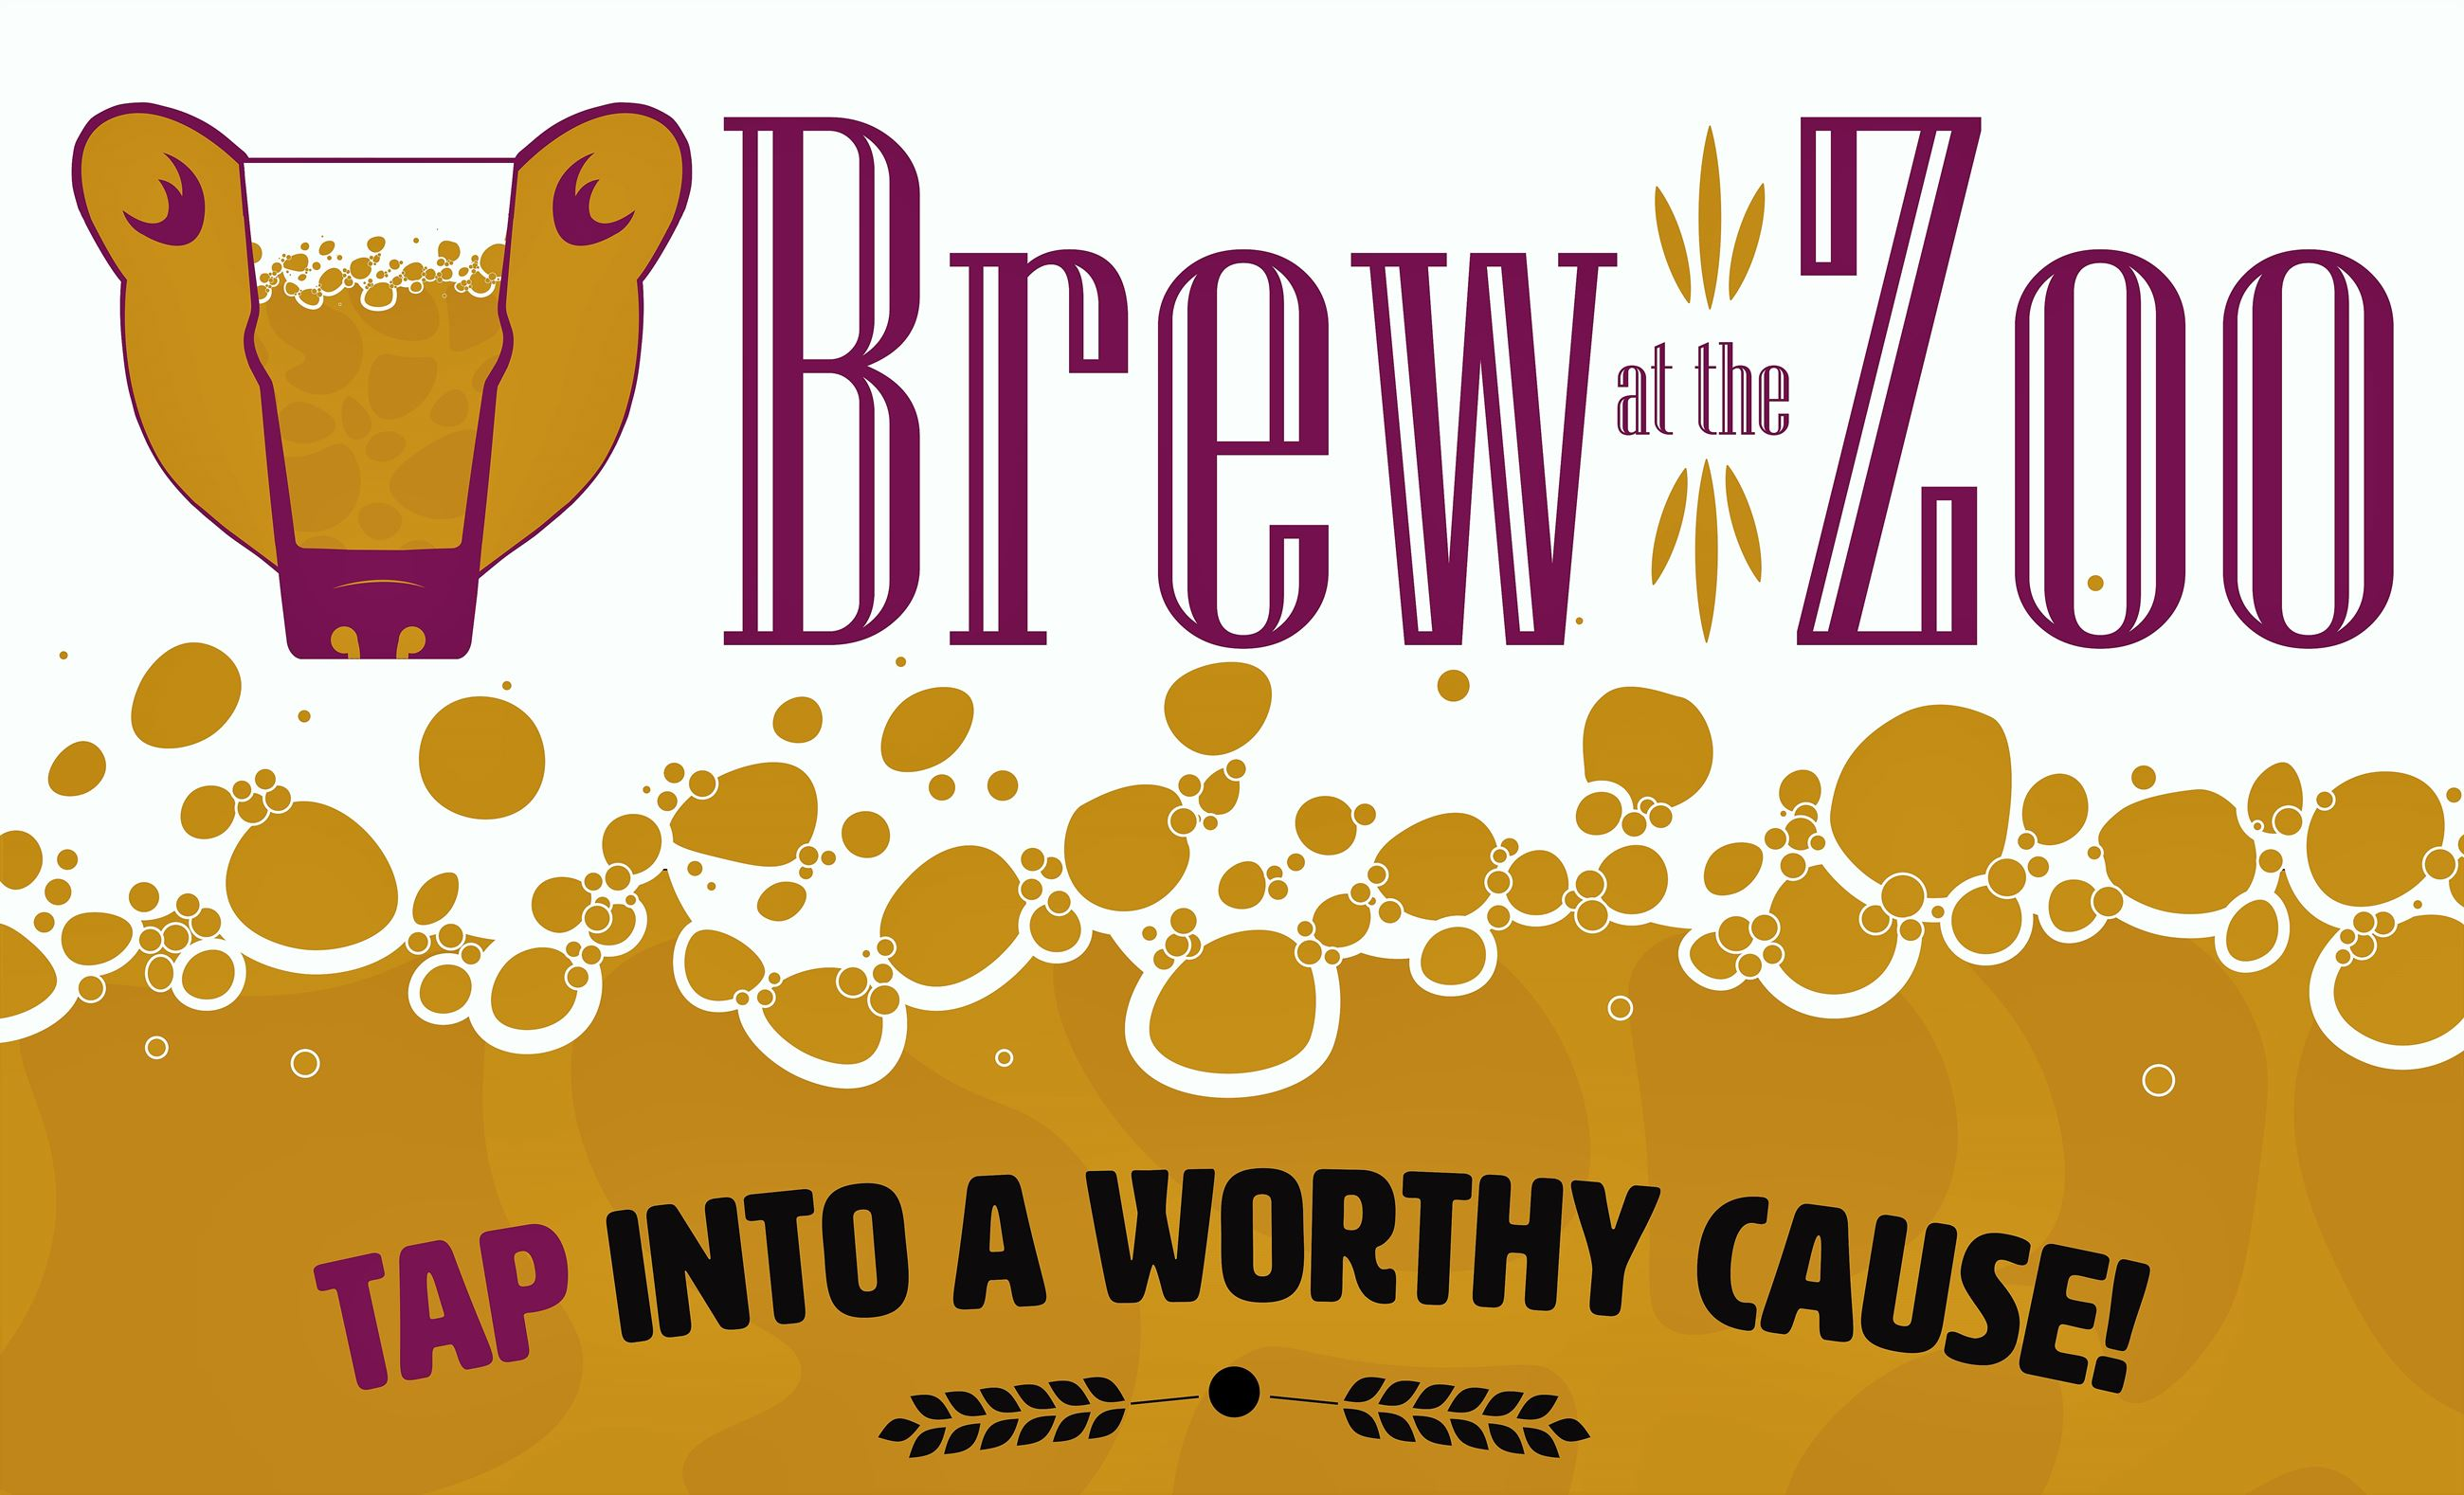 Brew at the Zoo poster